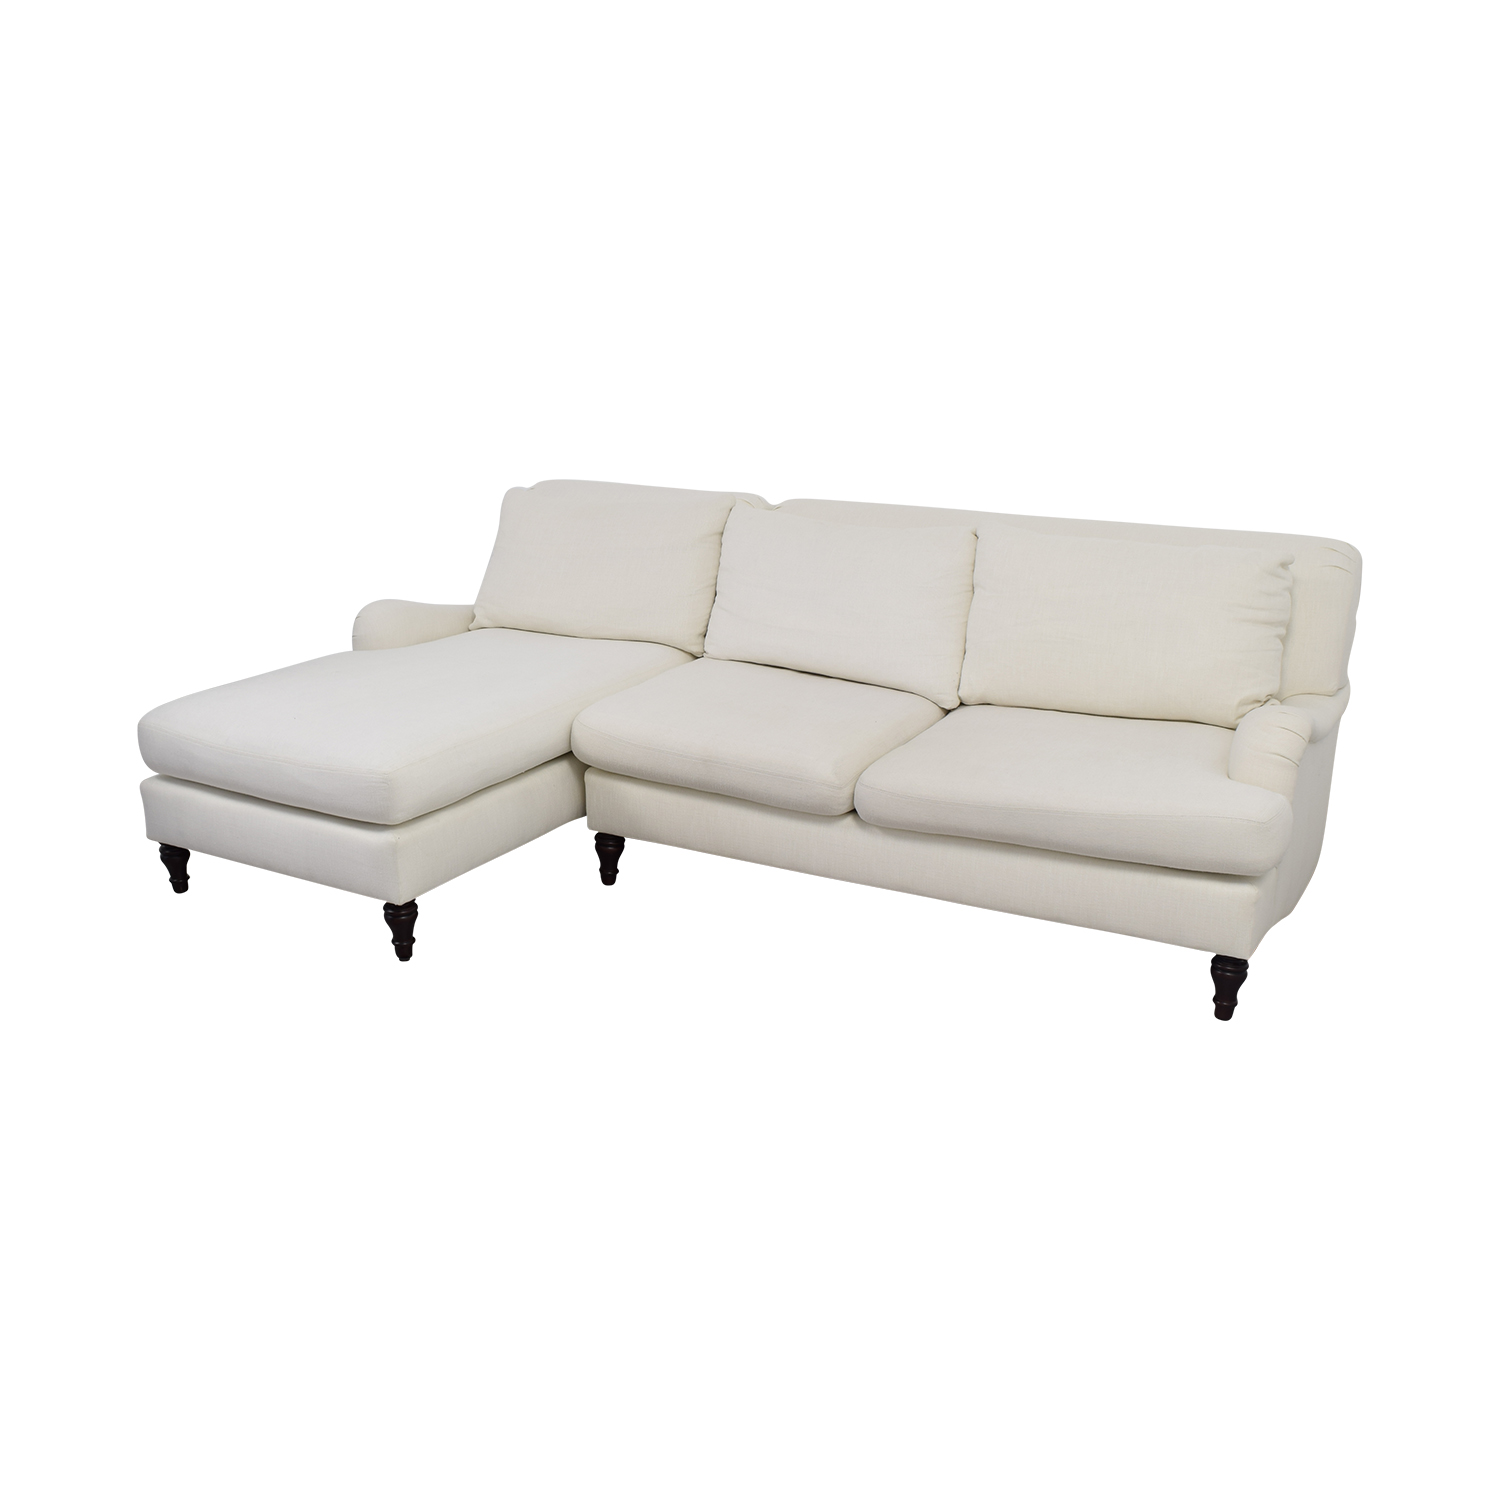 31 Off Pottery Barn Pottery Barn Carlisle White Chaise Sectional Sofas